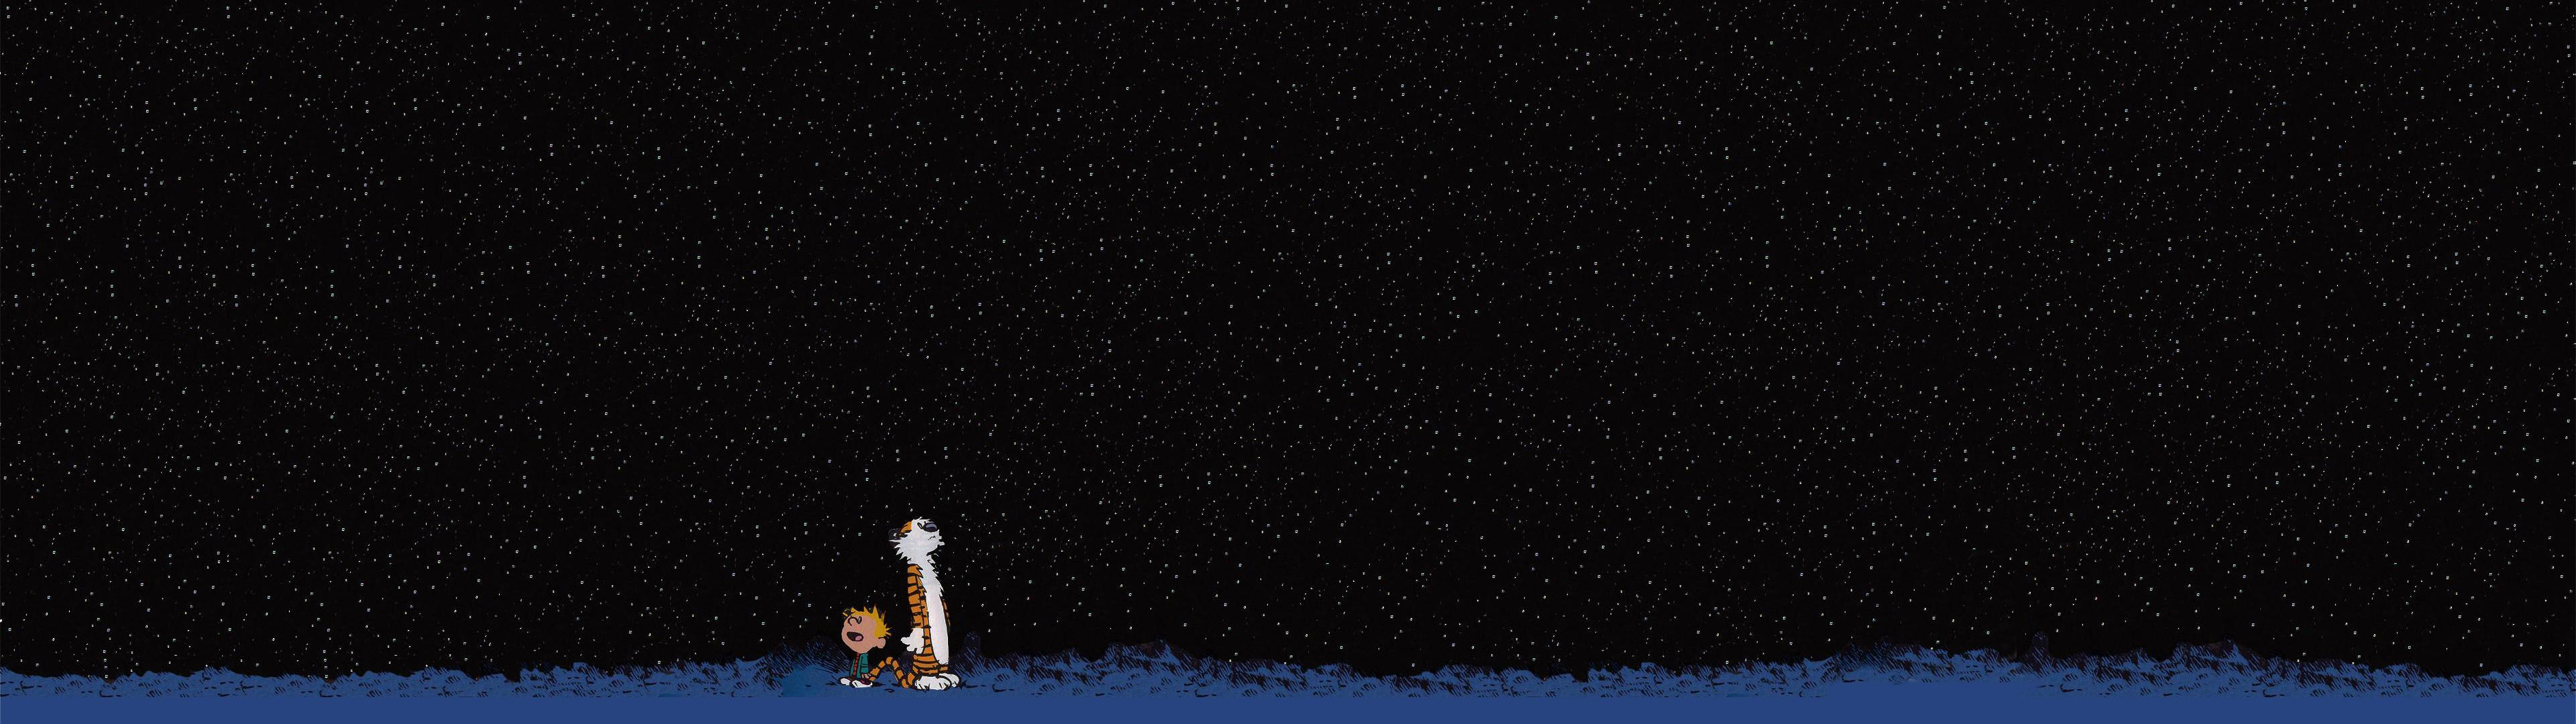 Free Download Stars Calvin And Hobbes Hd Wallpaper 3840x1080 For